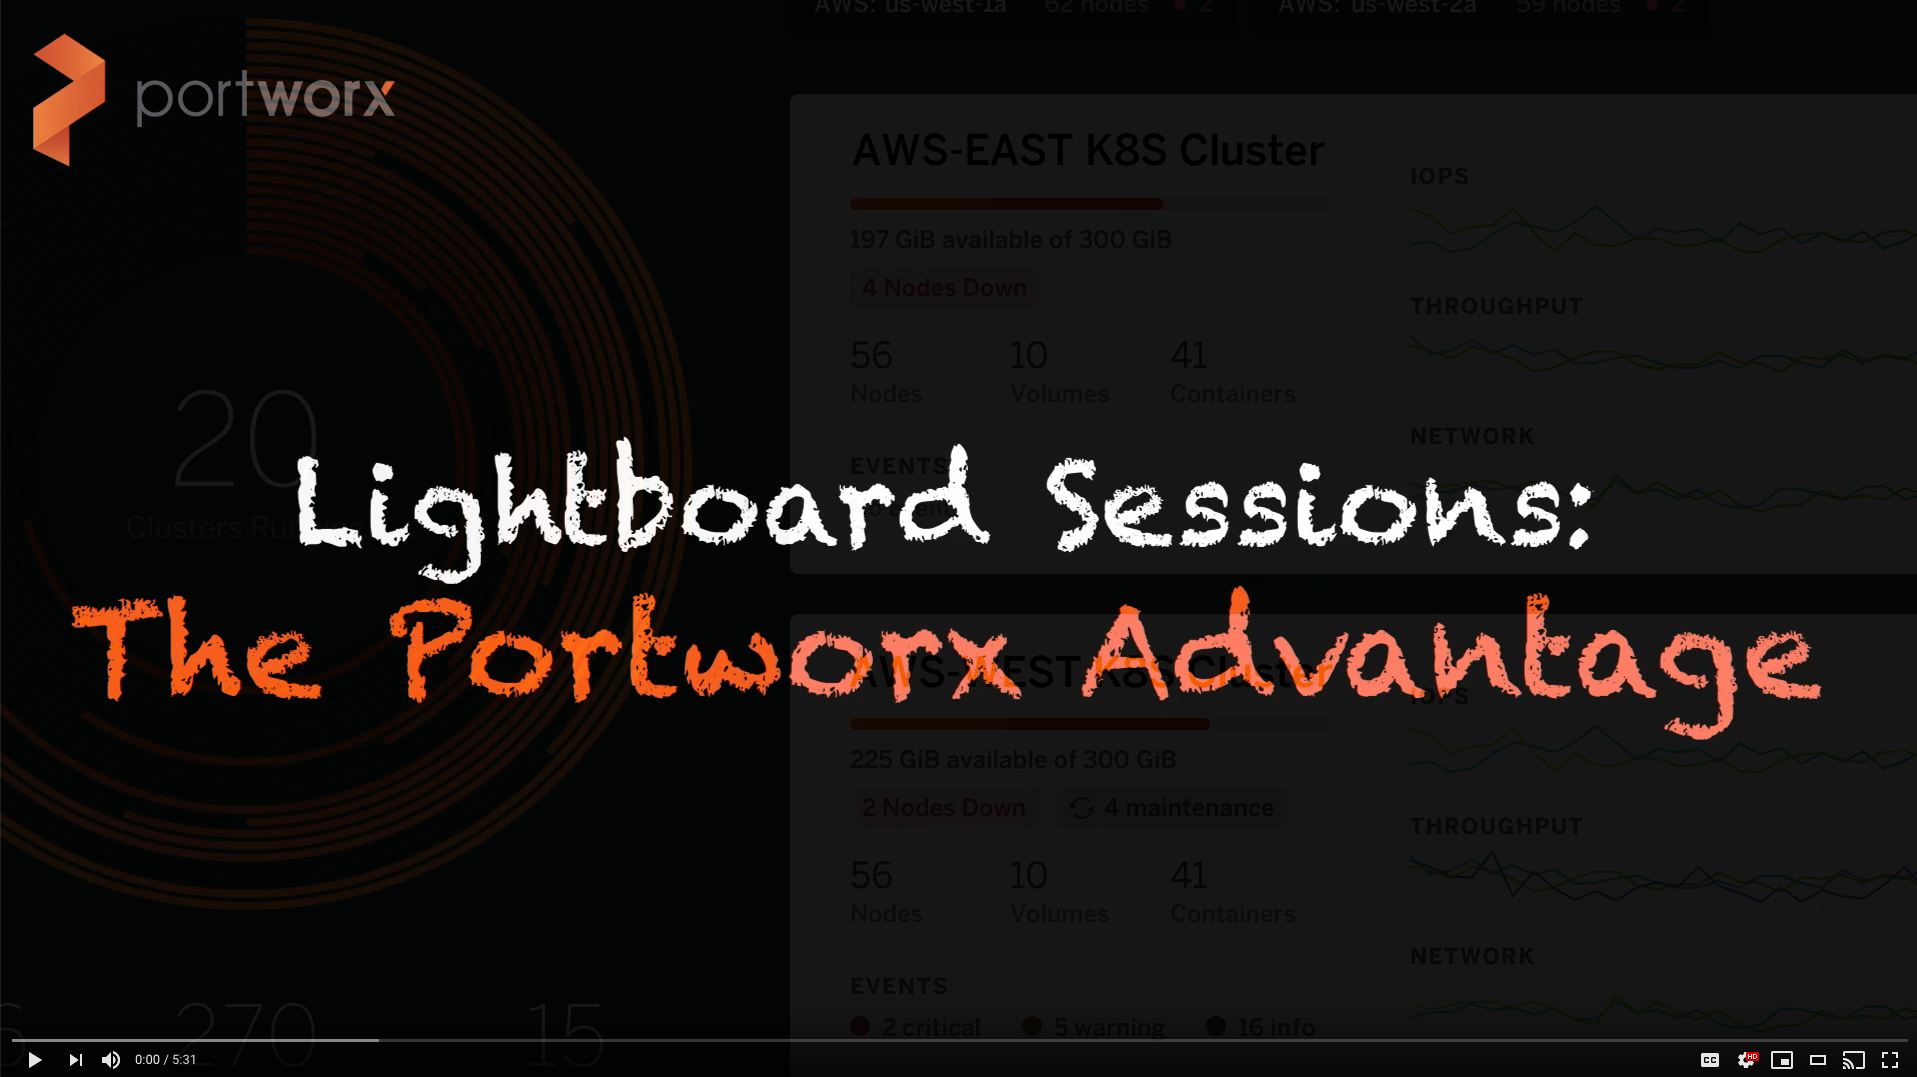 Lightboard Session: Why Choose Portworx